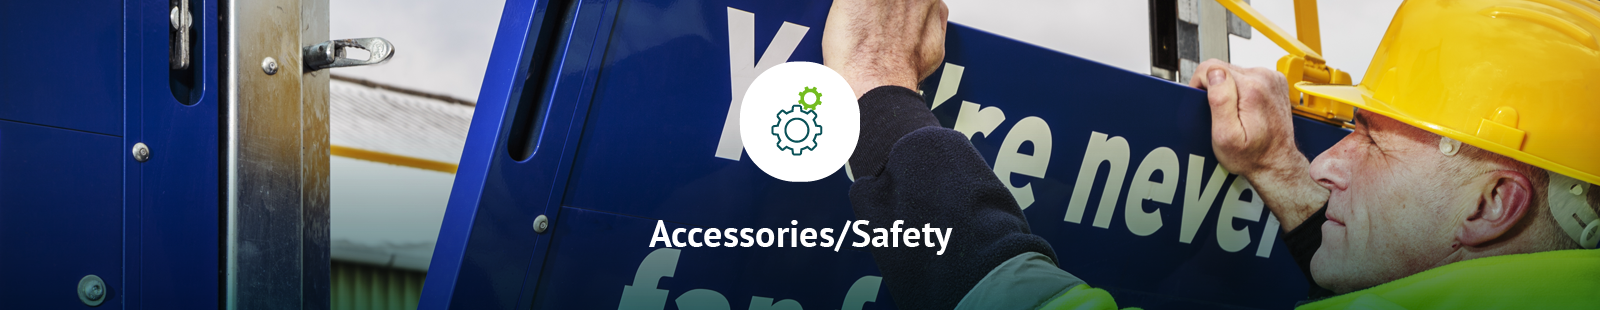 Accessories and Safety Equipment